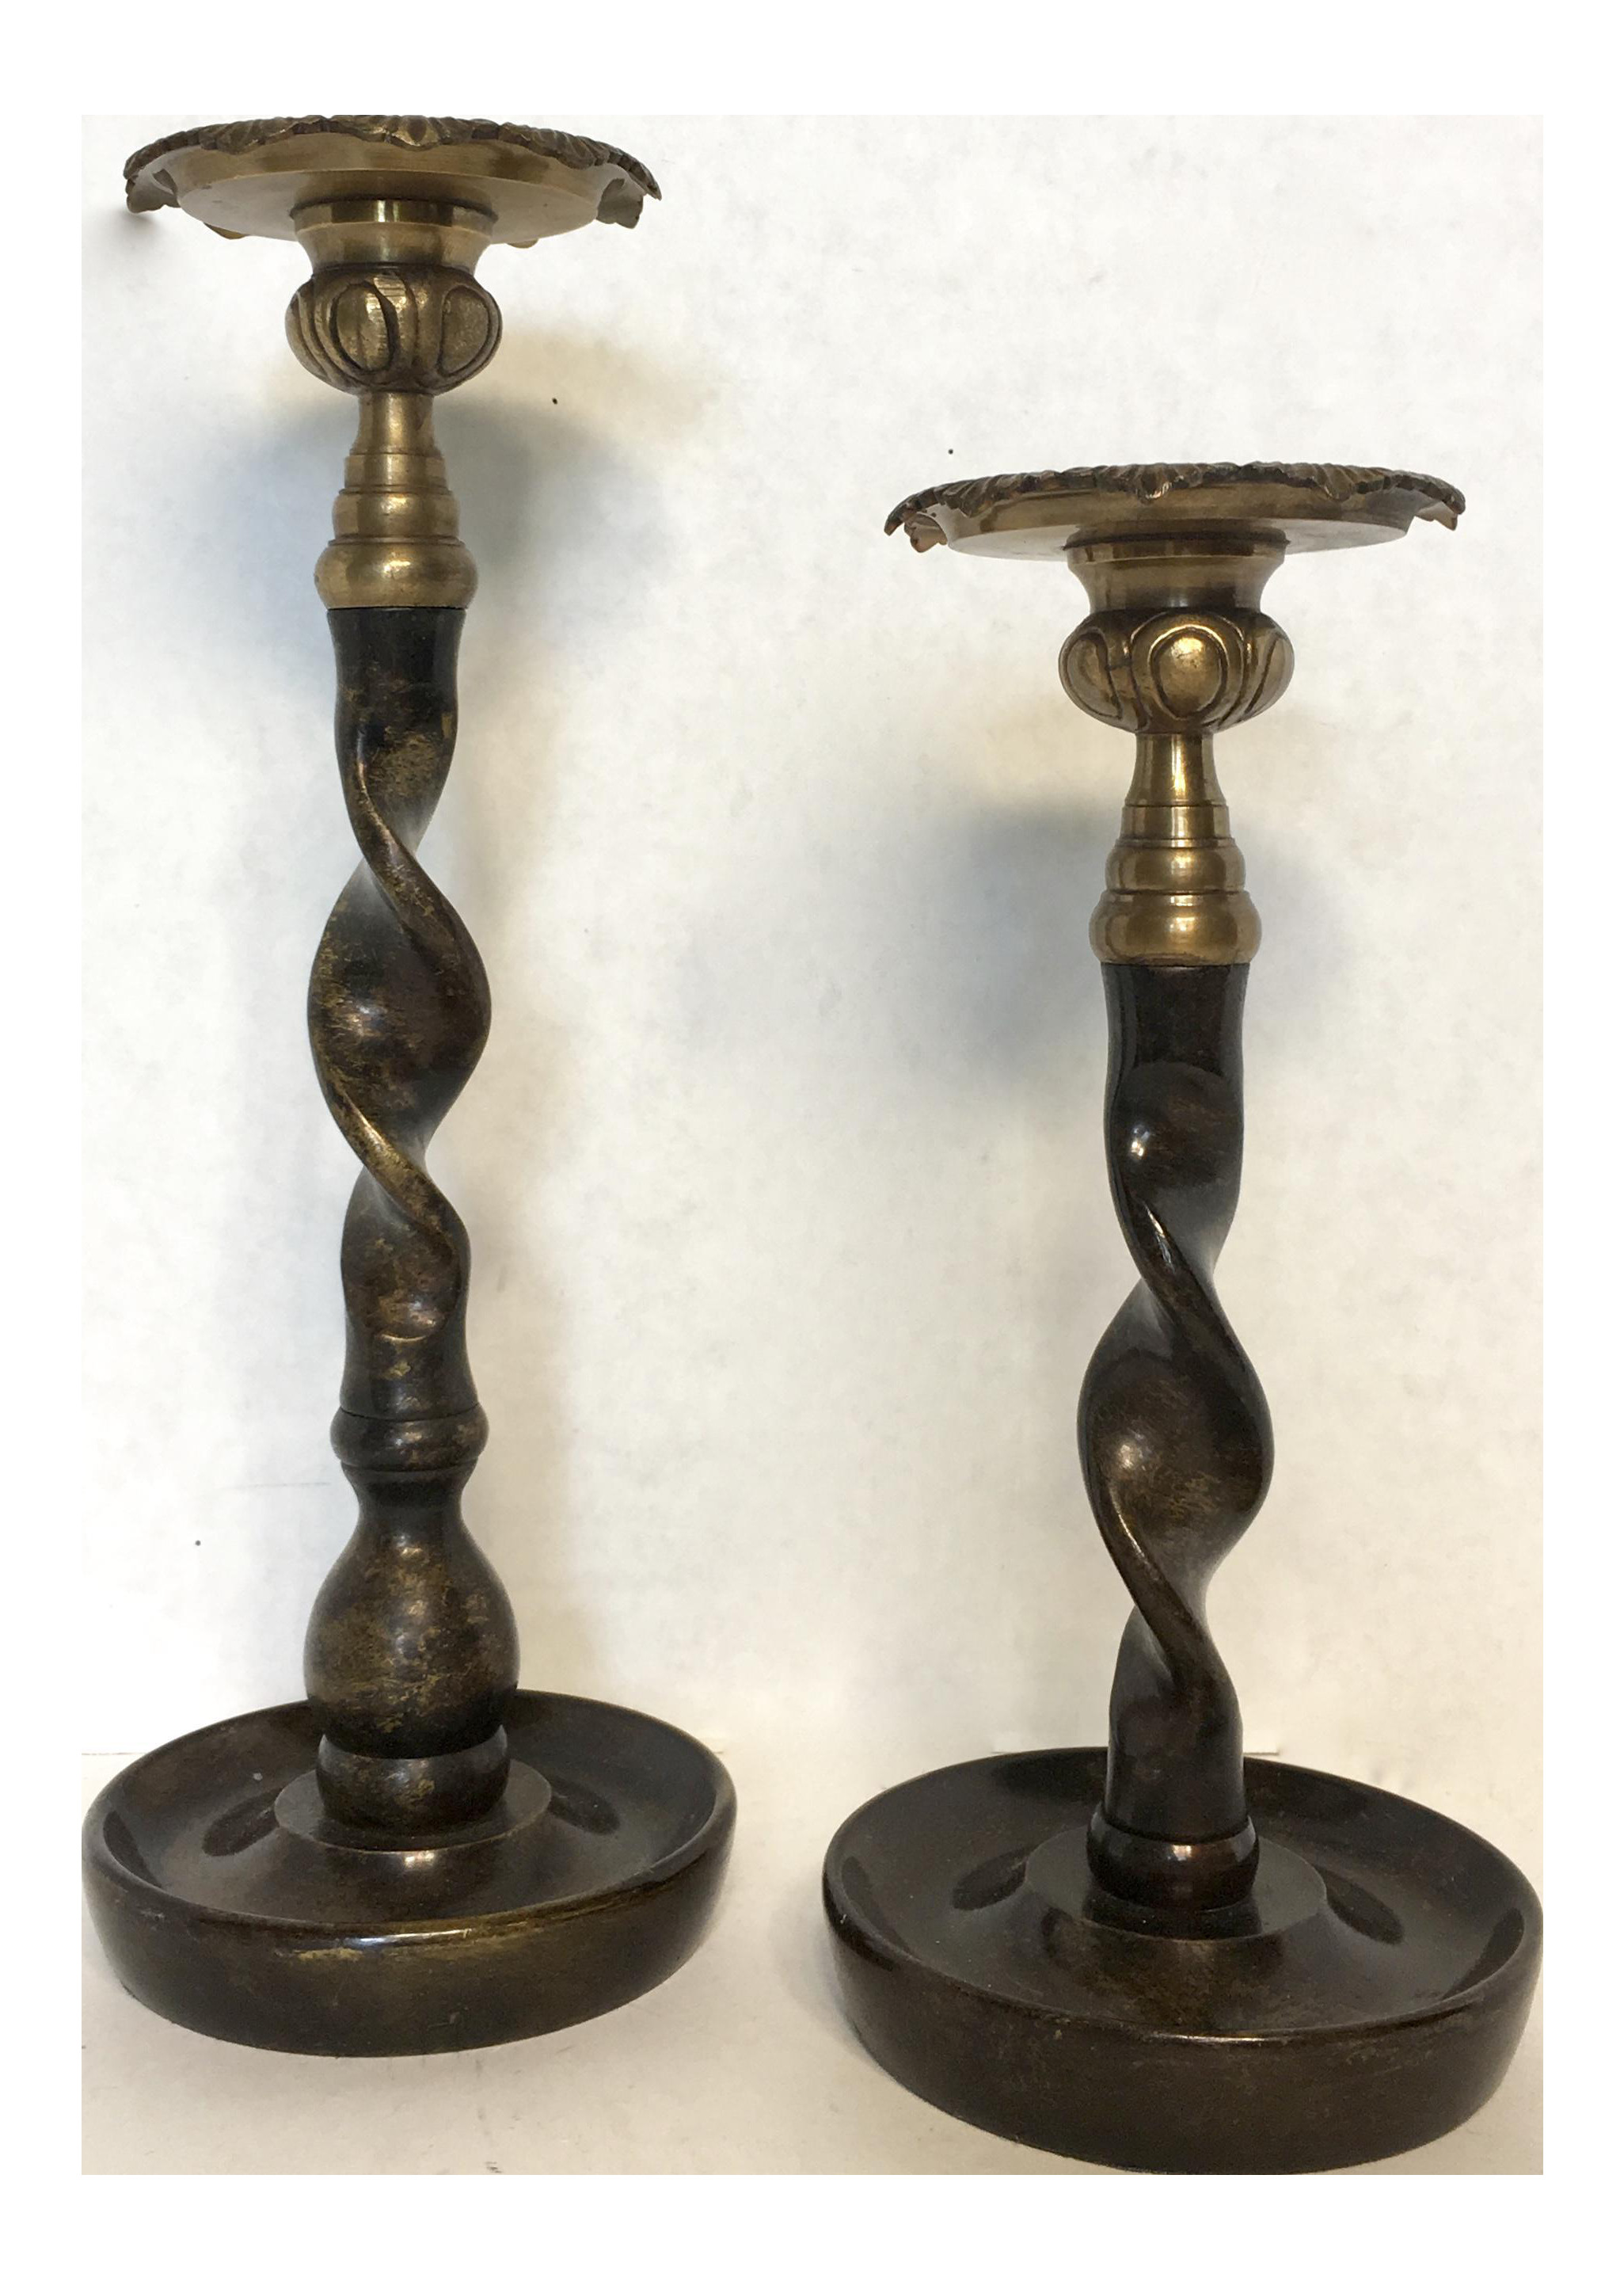 maitland smith ltd vase of maitland smith barley twist candle holders a pair chairish for maitland smith barley twist candle holders a pair 5504